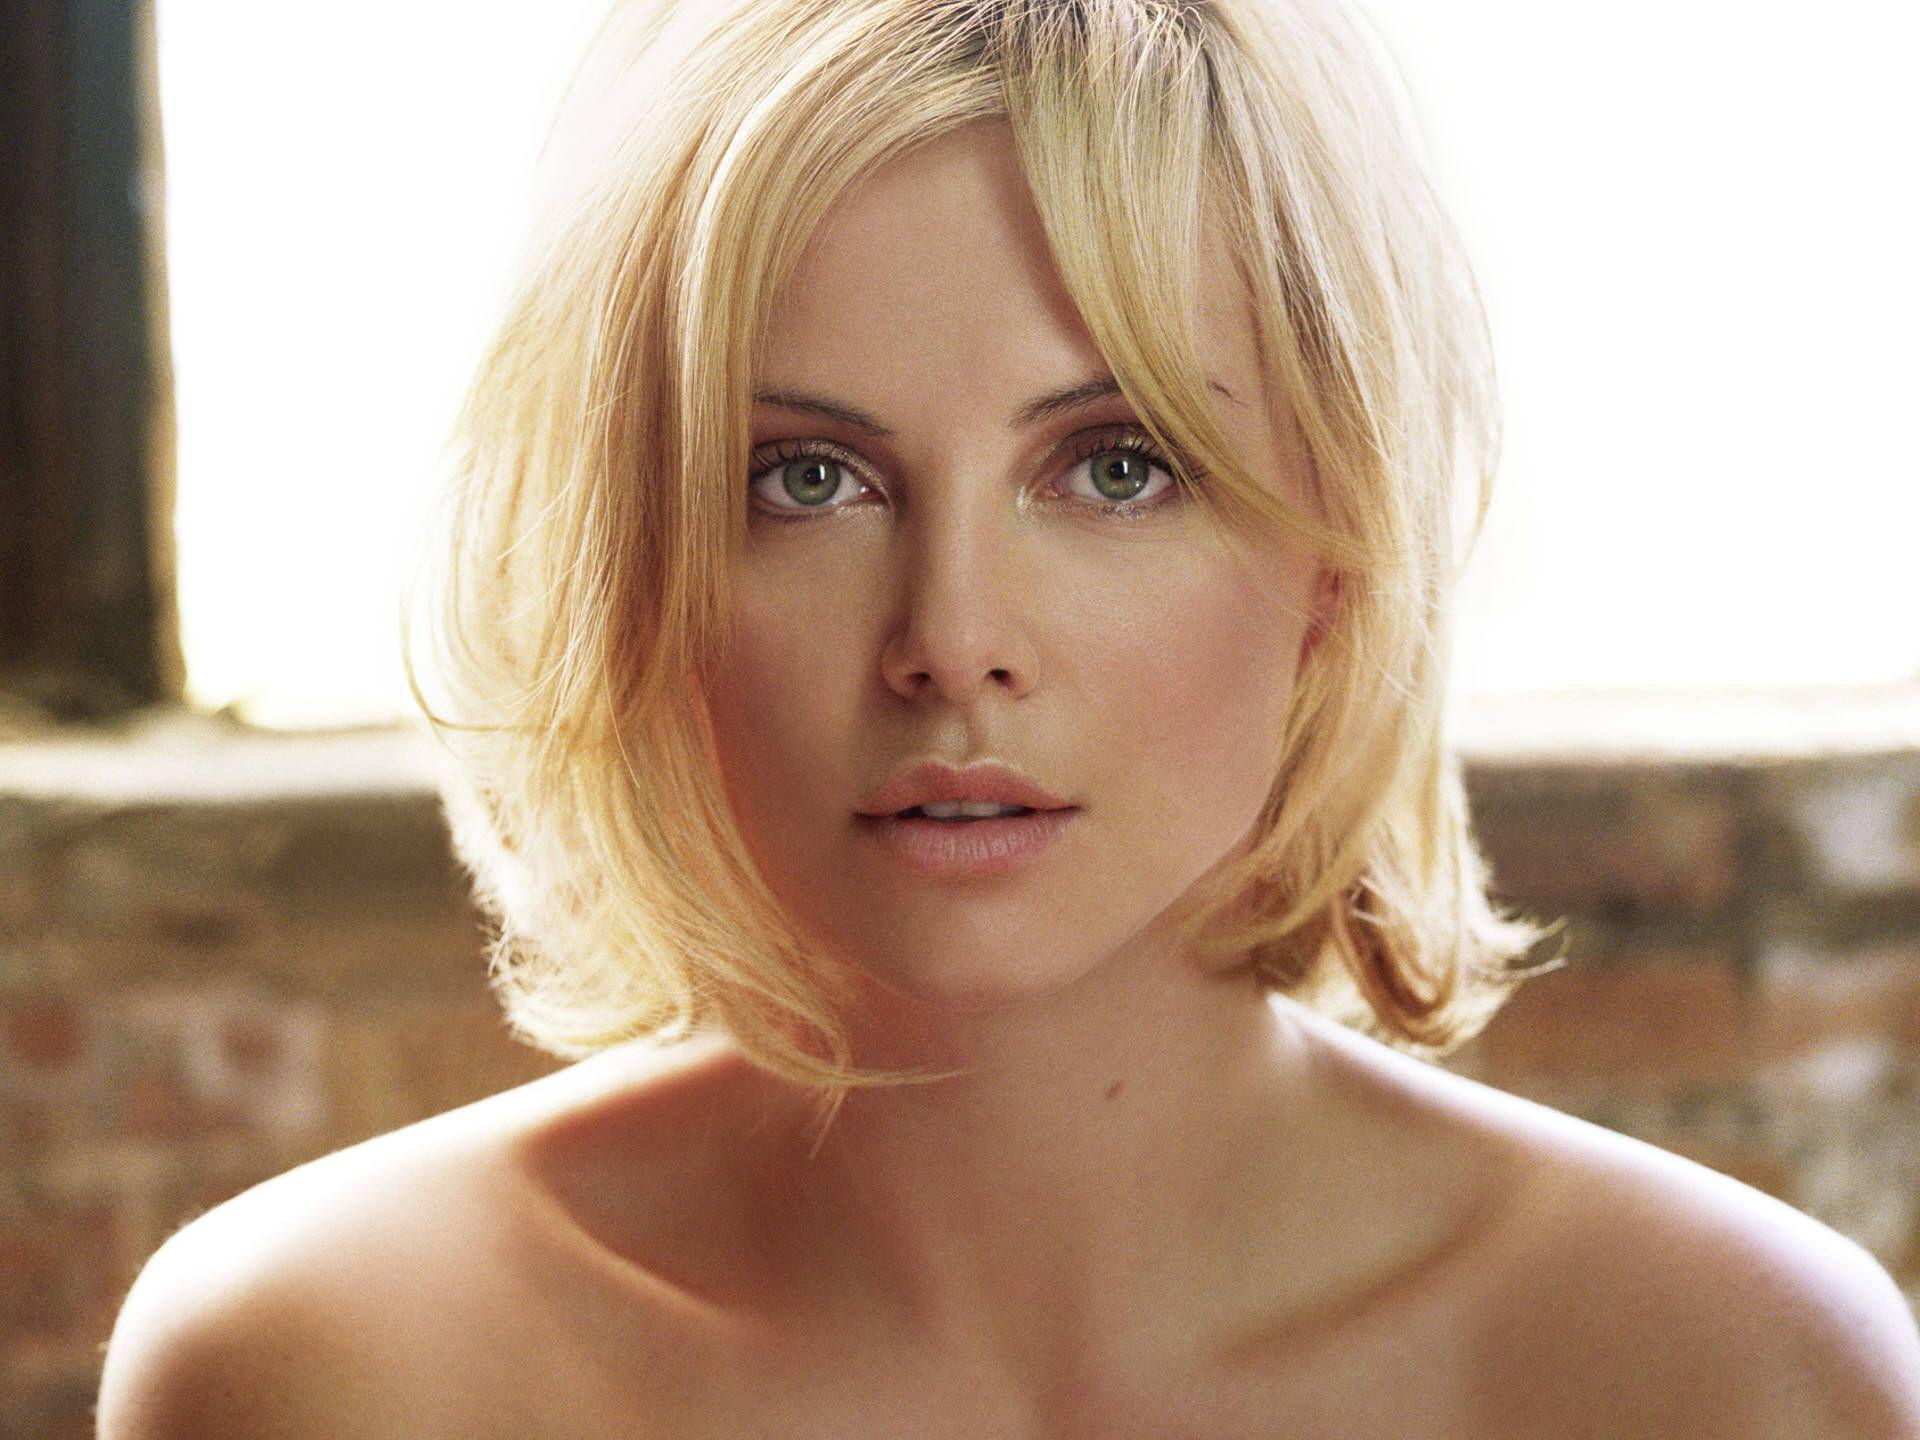 Charlize Theron Wallpapers - Page 1 - HD Wallpapers